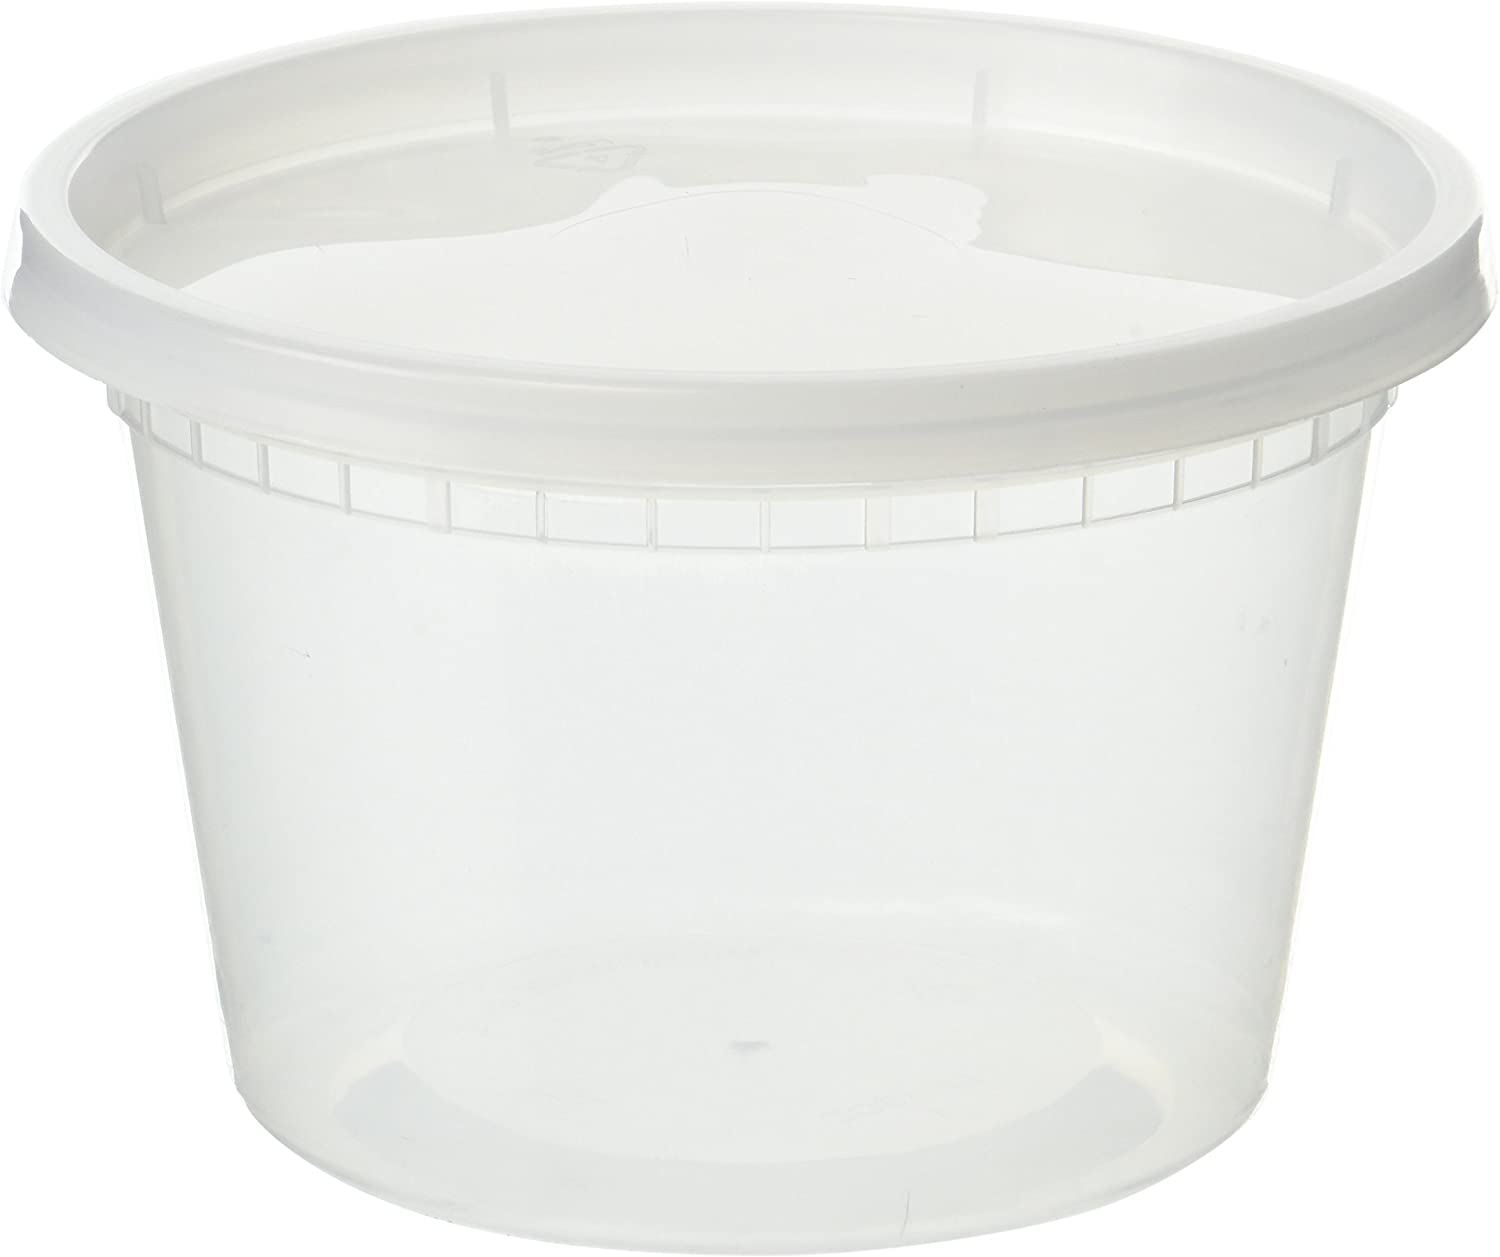 EDI D16050 Plastic Deli Food Storage Containers with Lids 50 Sets (16OZ)